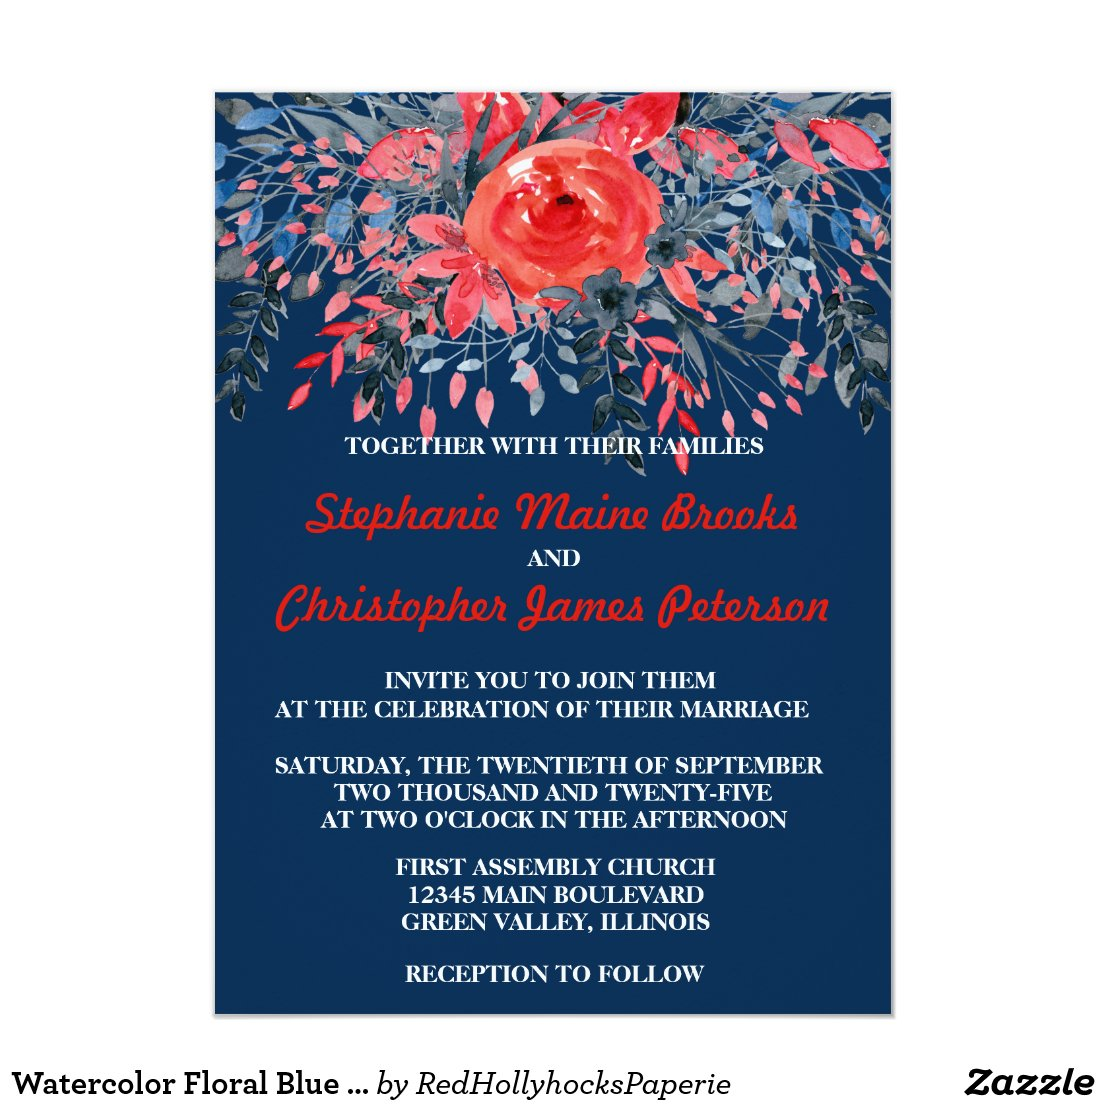 Watercolor Floral Blue Denim and Red Rose Wedding Card